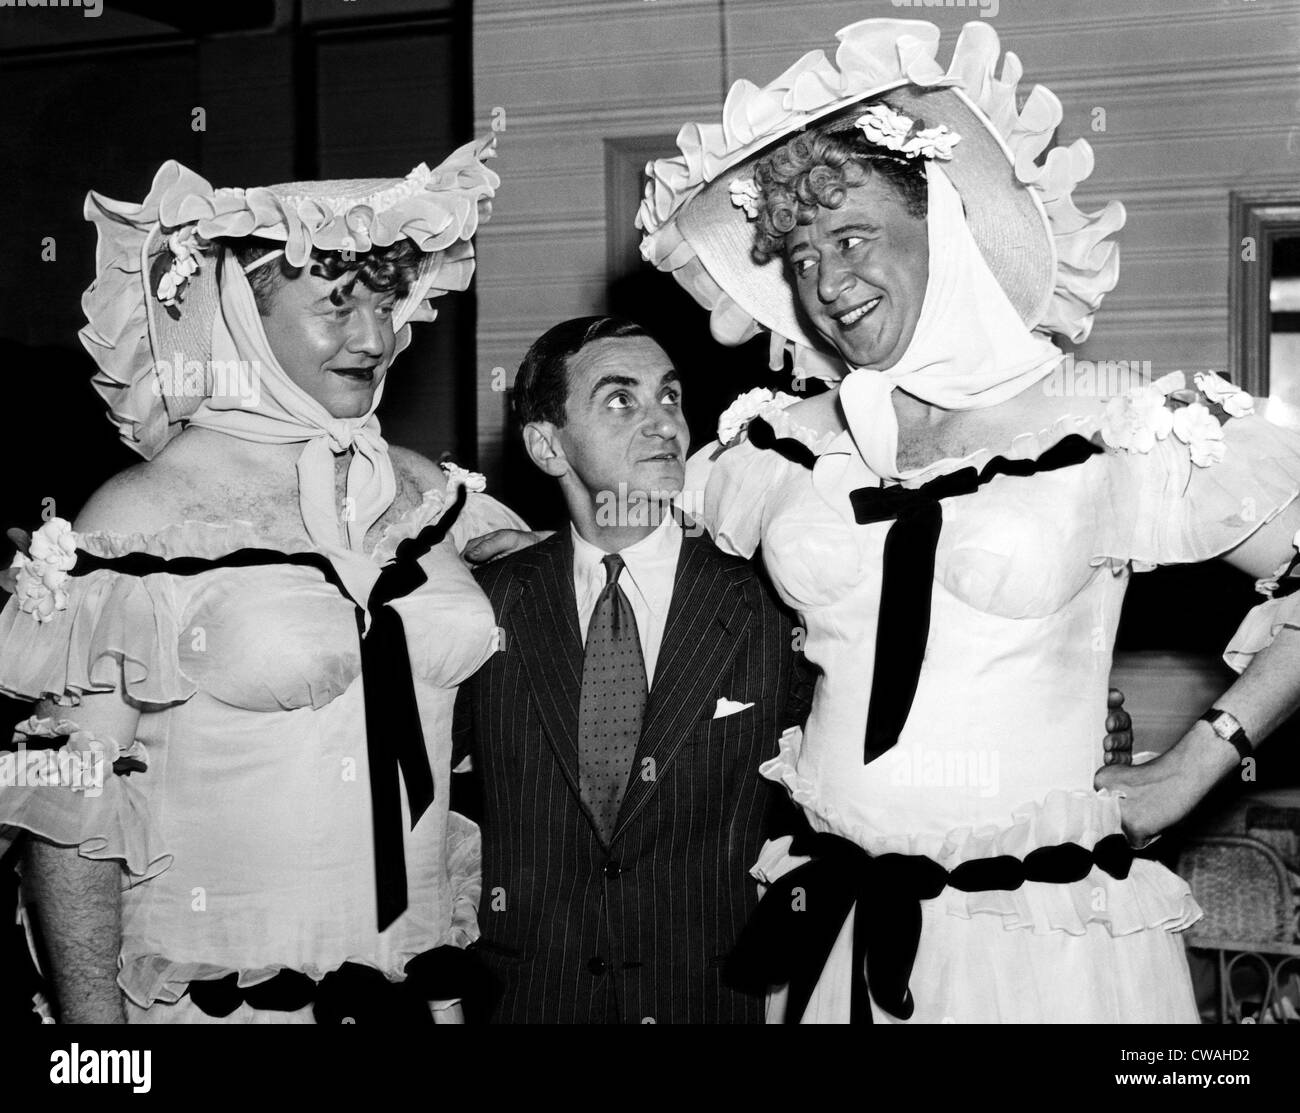 Burl Ives, Irving Berlin and Anthony Ross, 1942. Courtesy: CSU Archives/Everett Collection - Stock Image